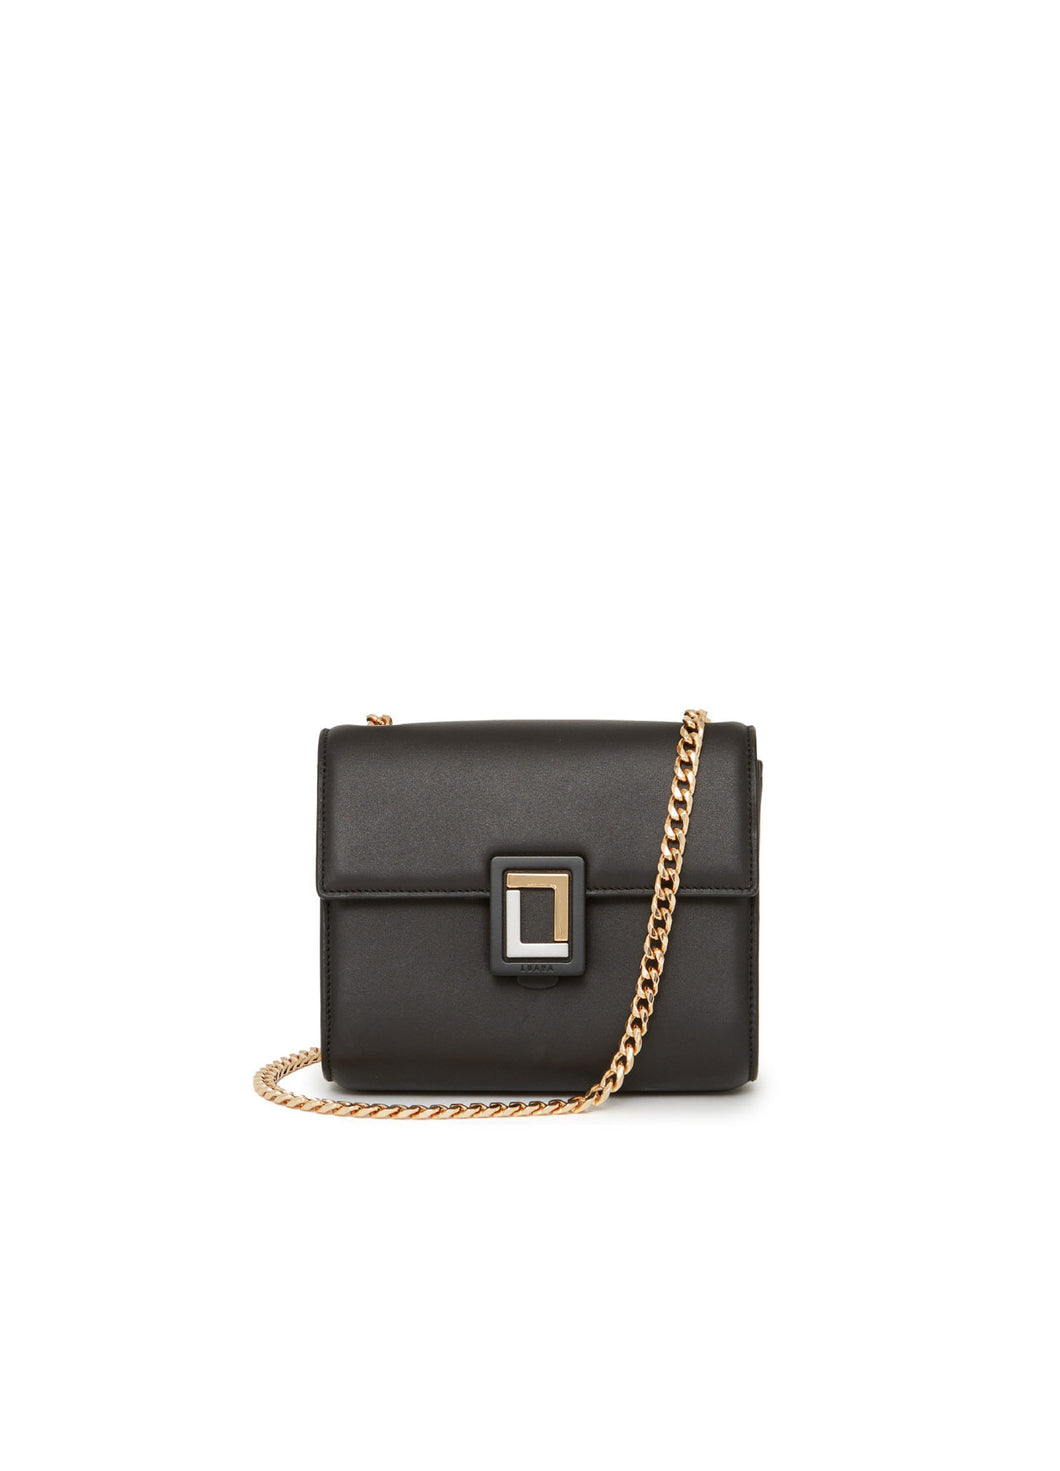 Luly Yang | Marella Mini Shoulder Bag